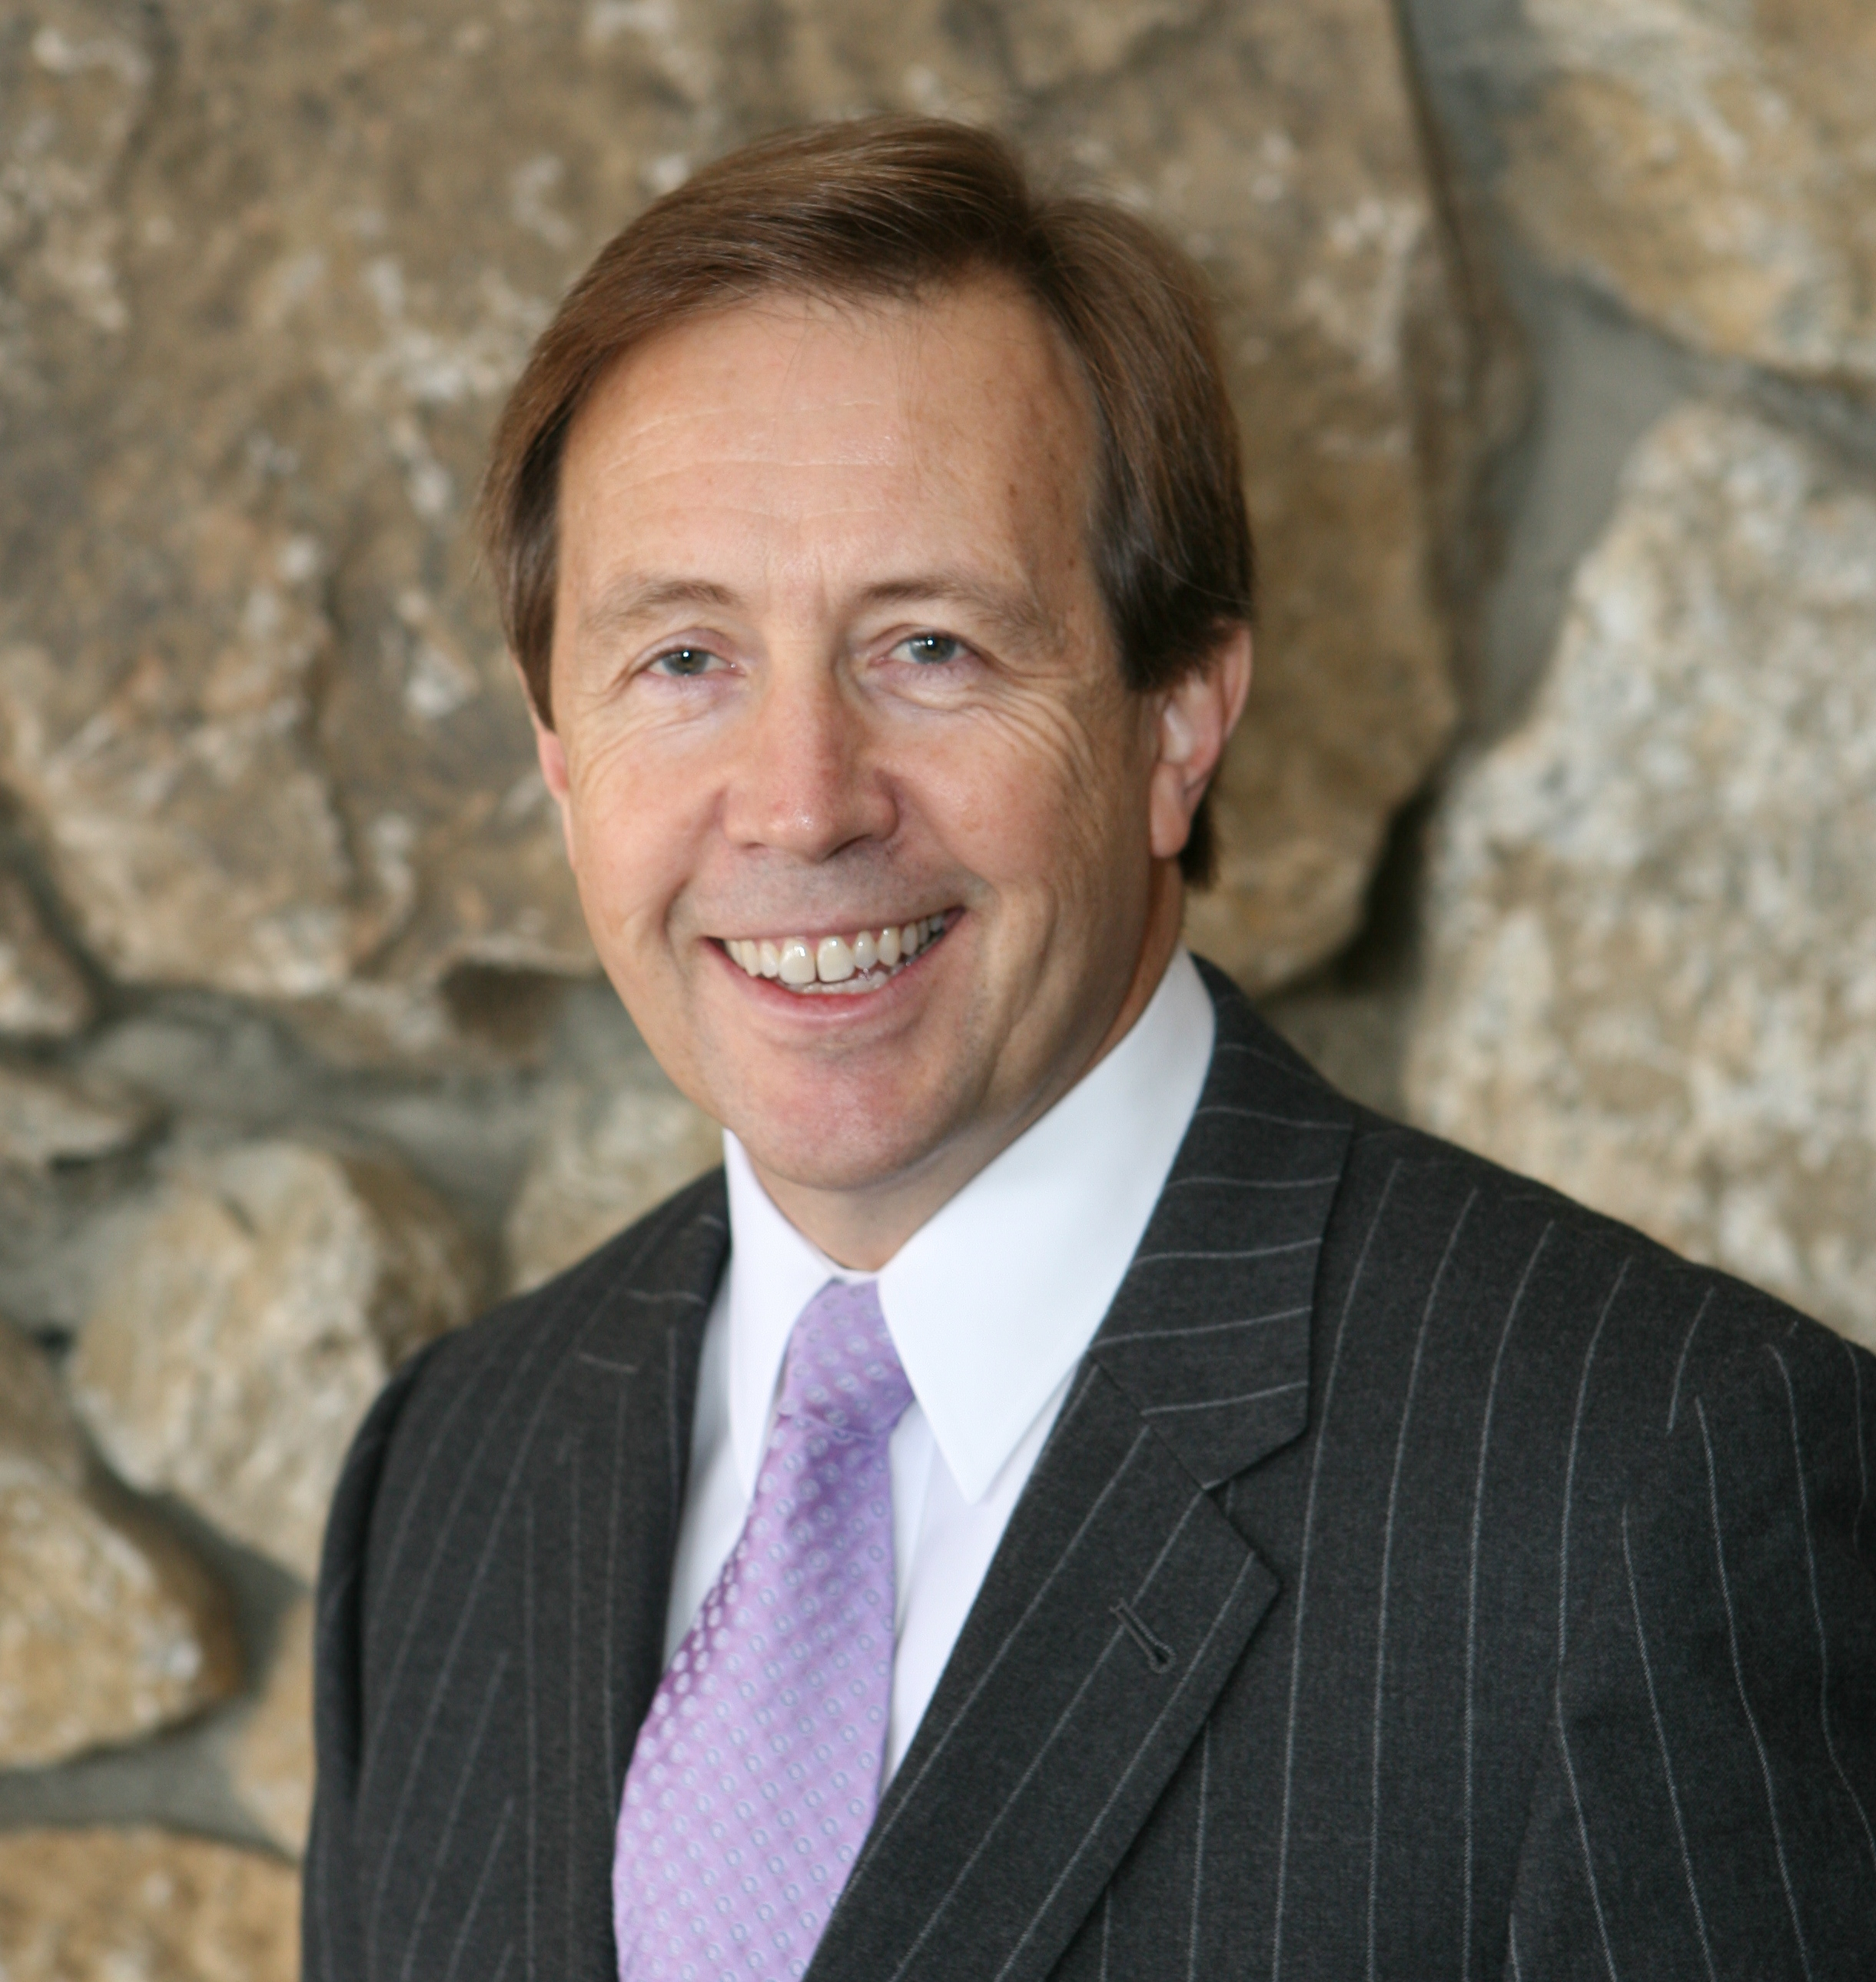 Former SECF President and CEO Mike Howland